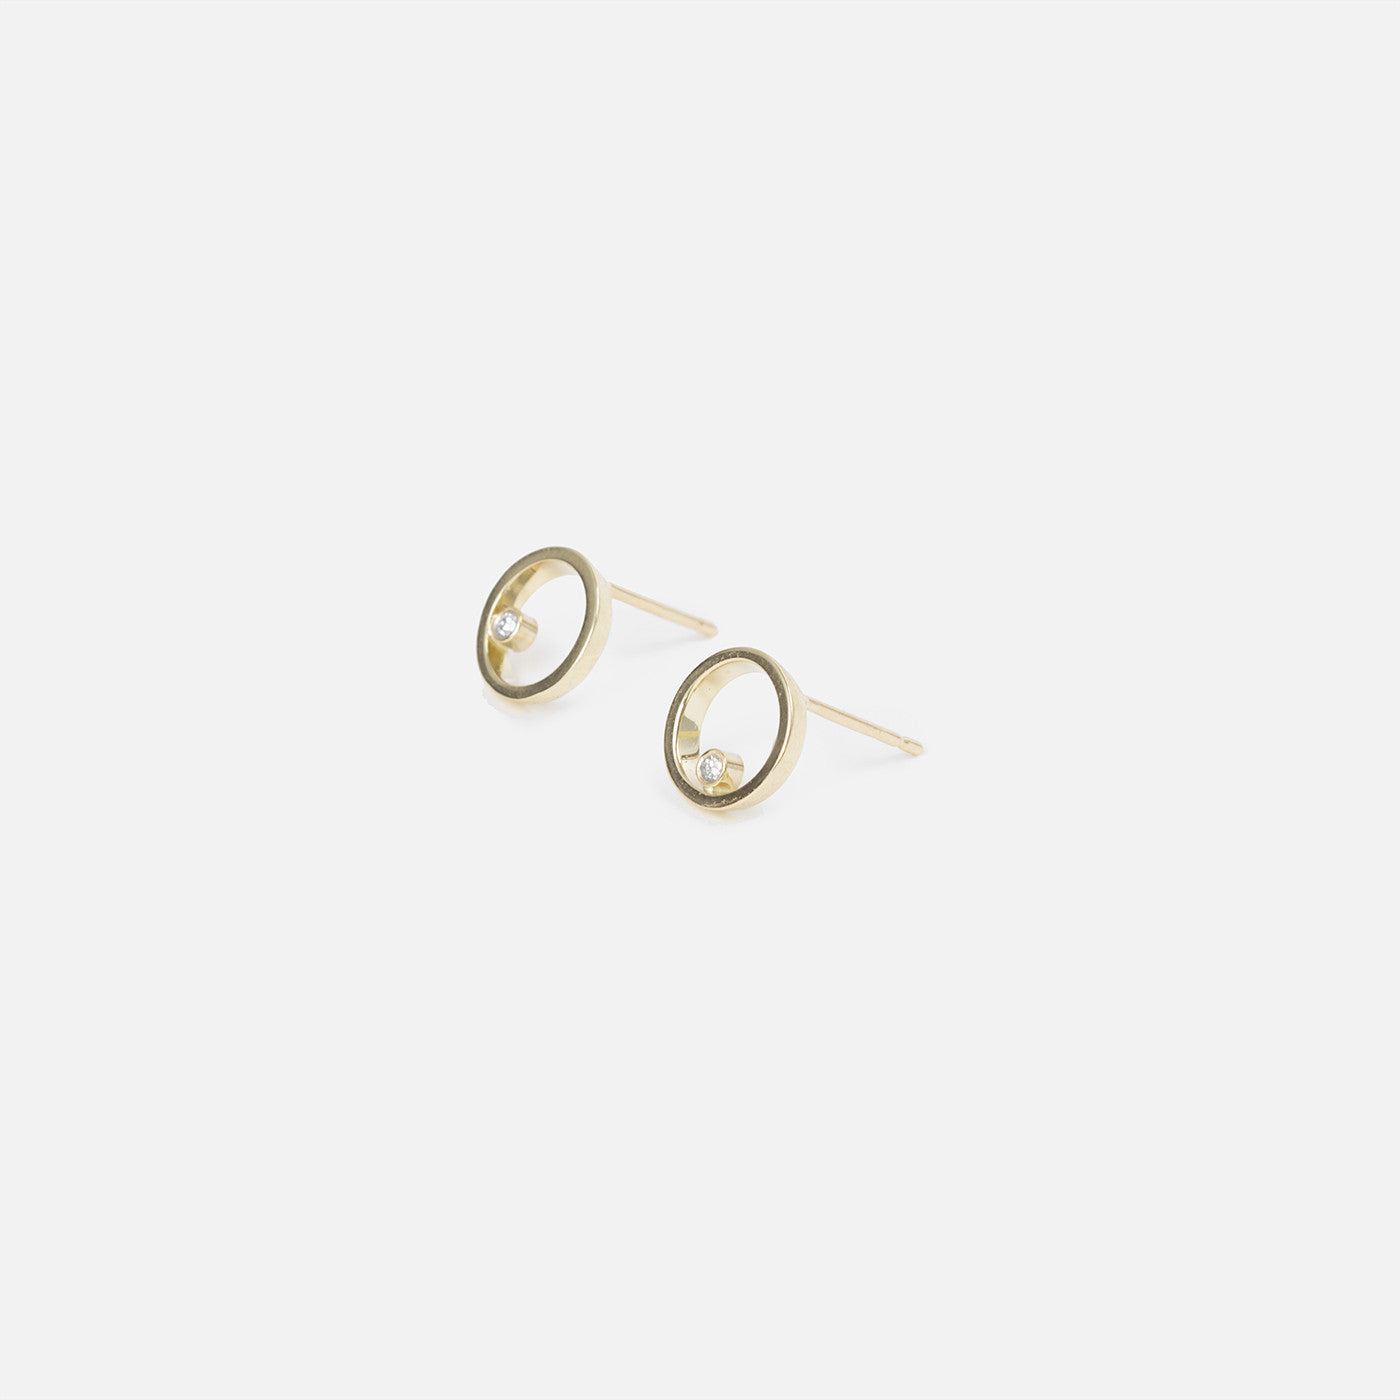 rings jewellery bonas gold earrings oliver aqua ear kosi